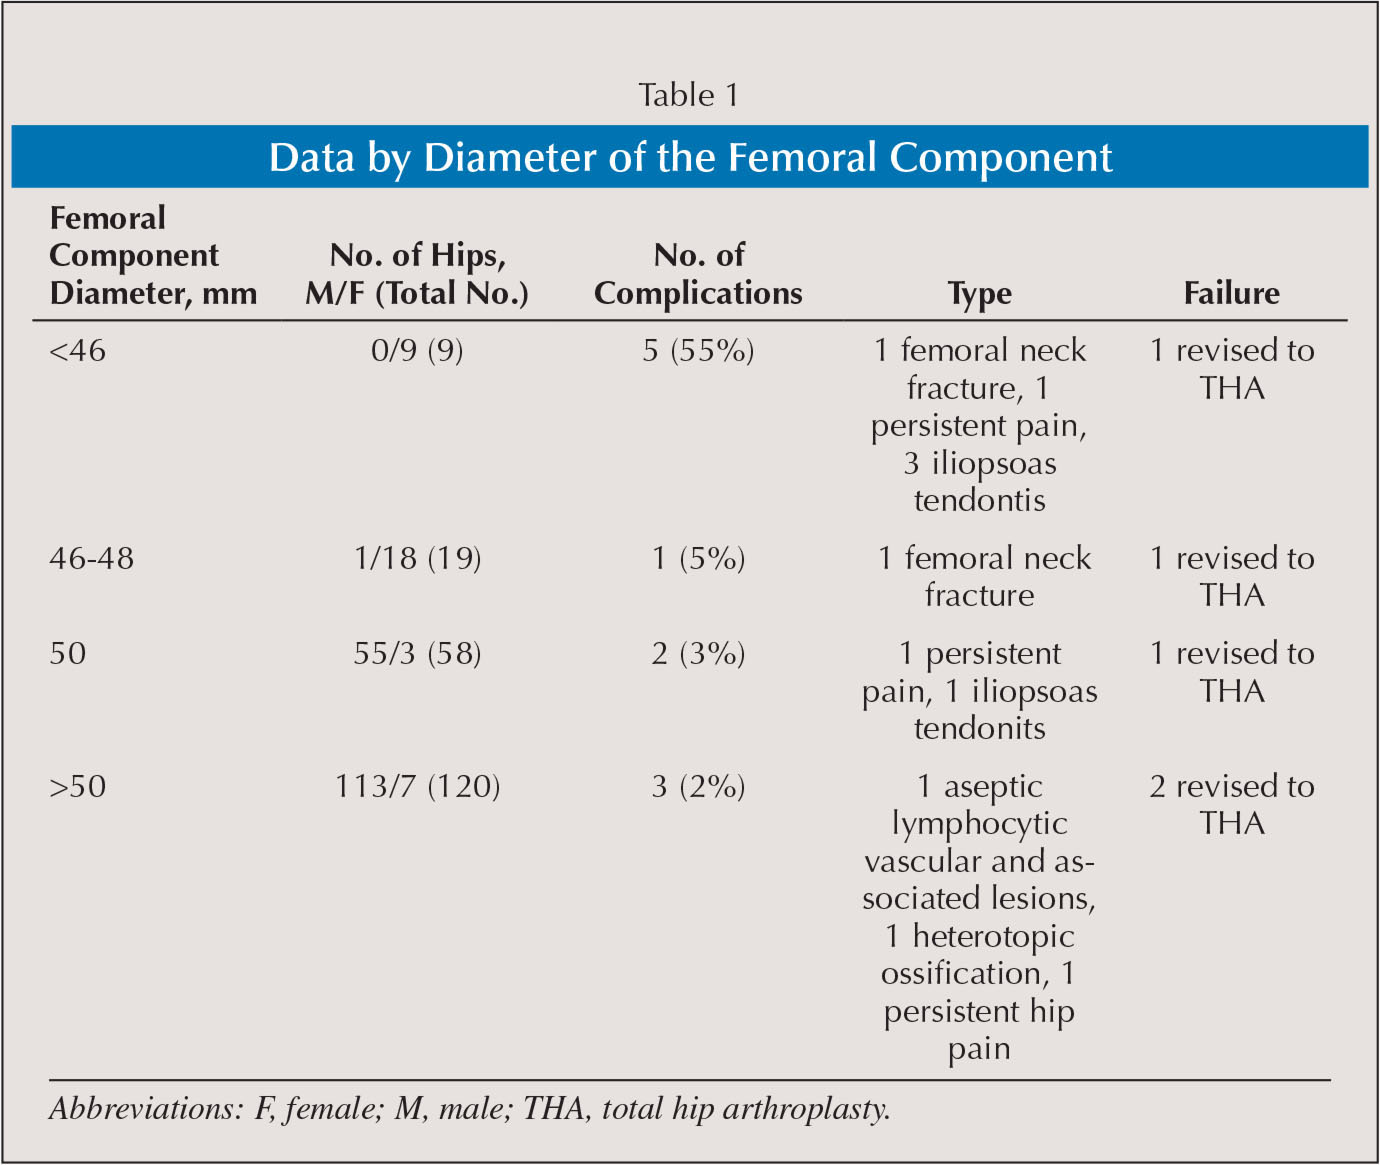 Data by Diameter of the Femoral Component